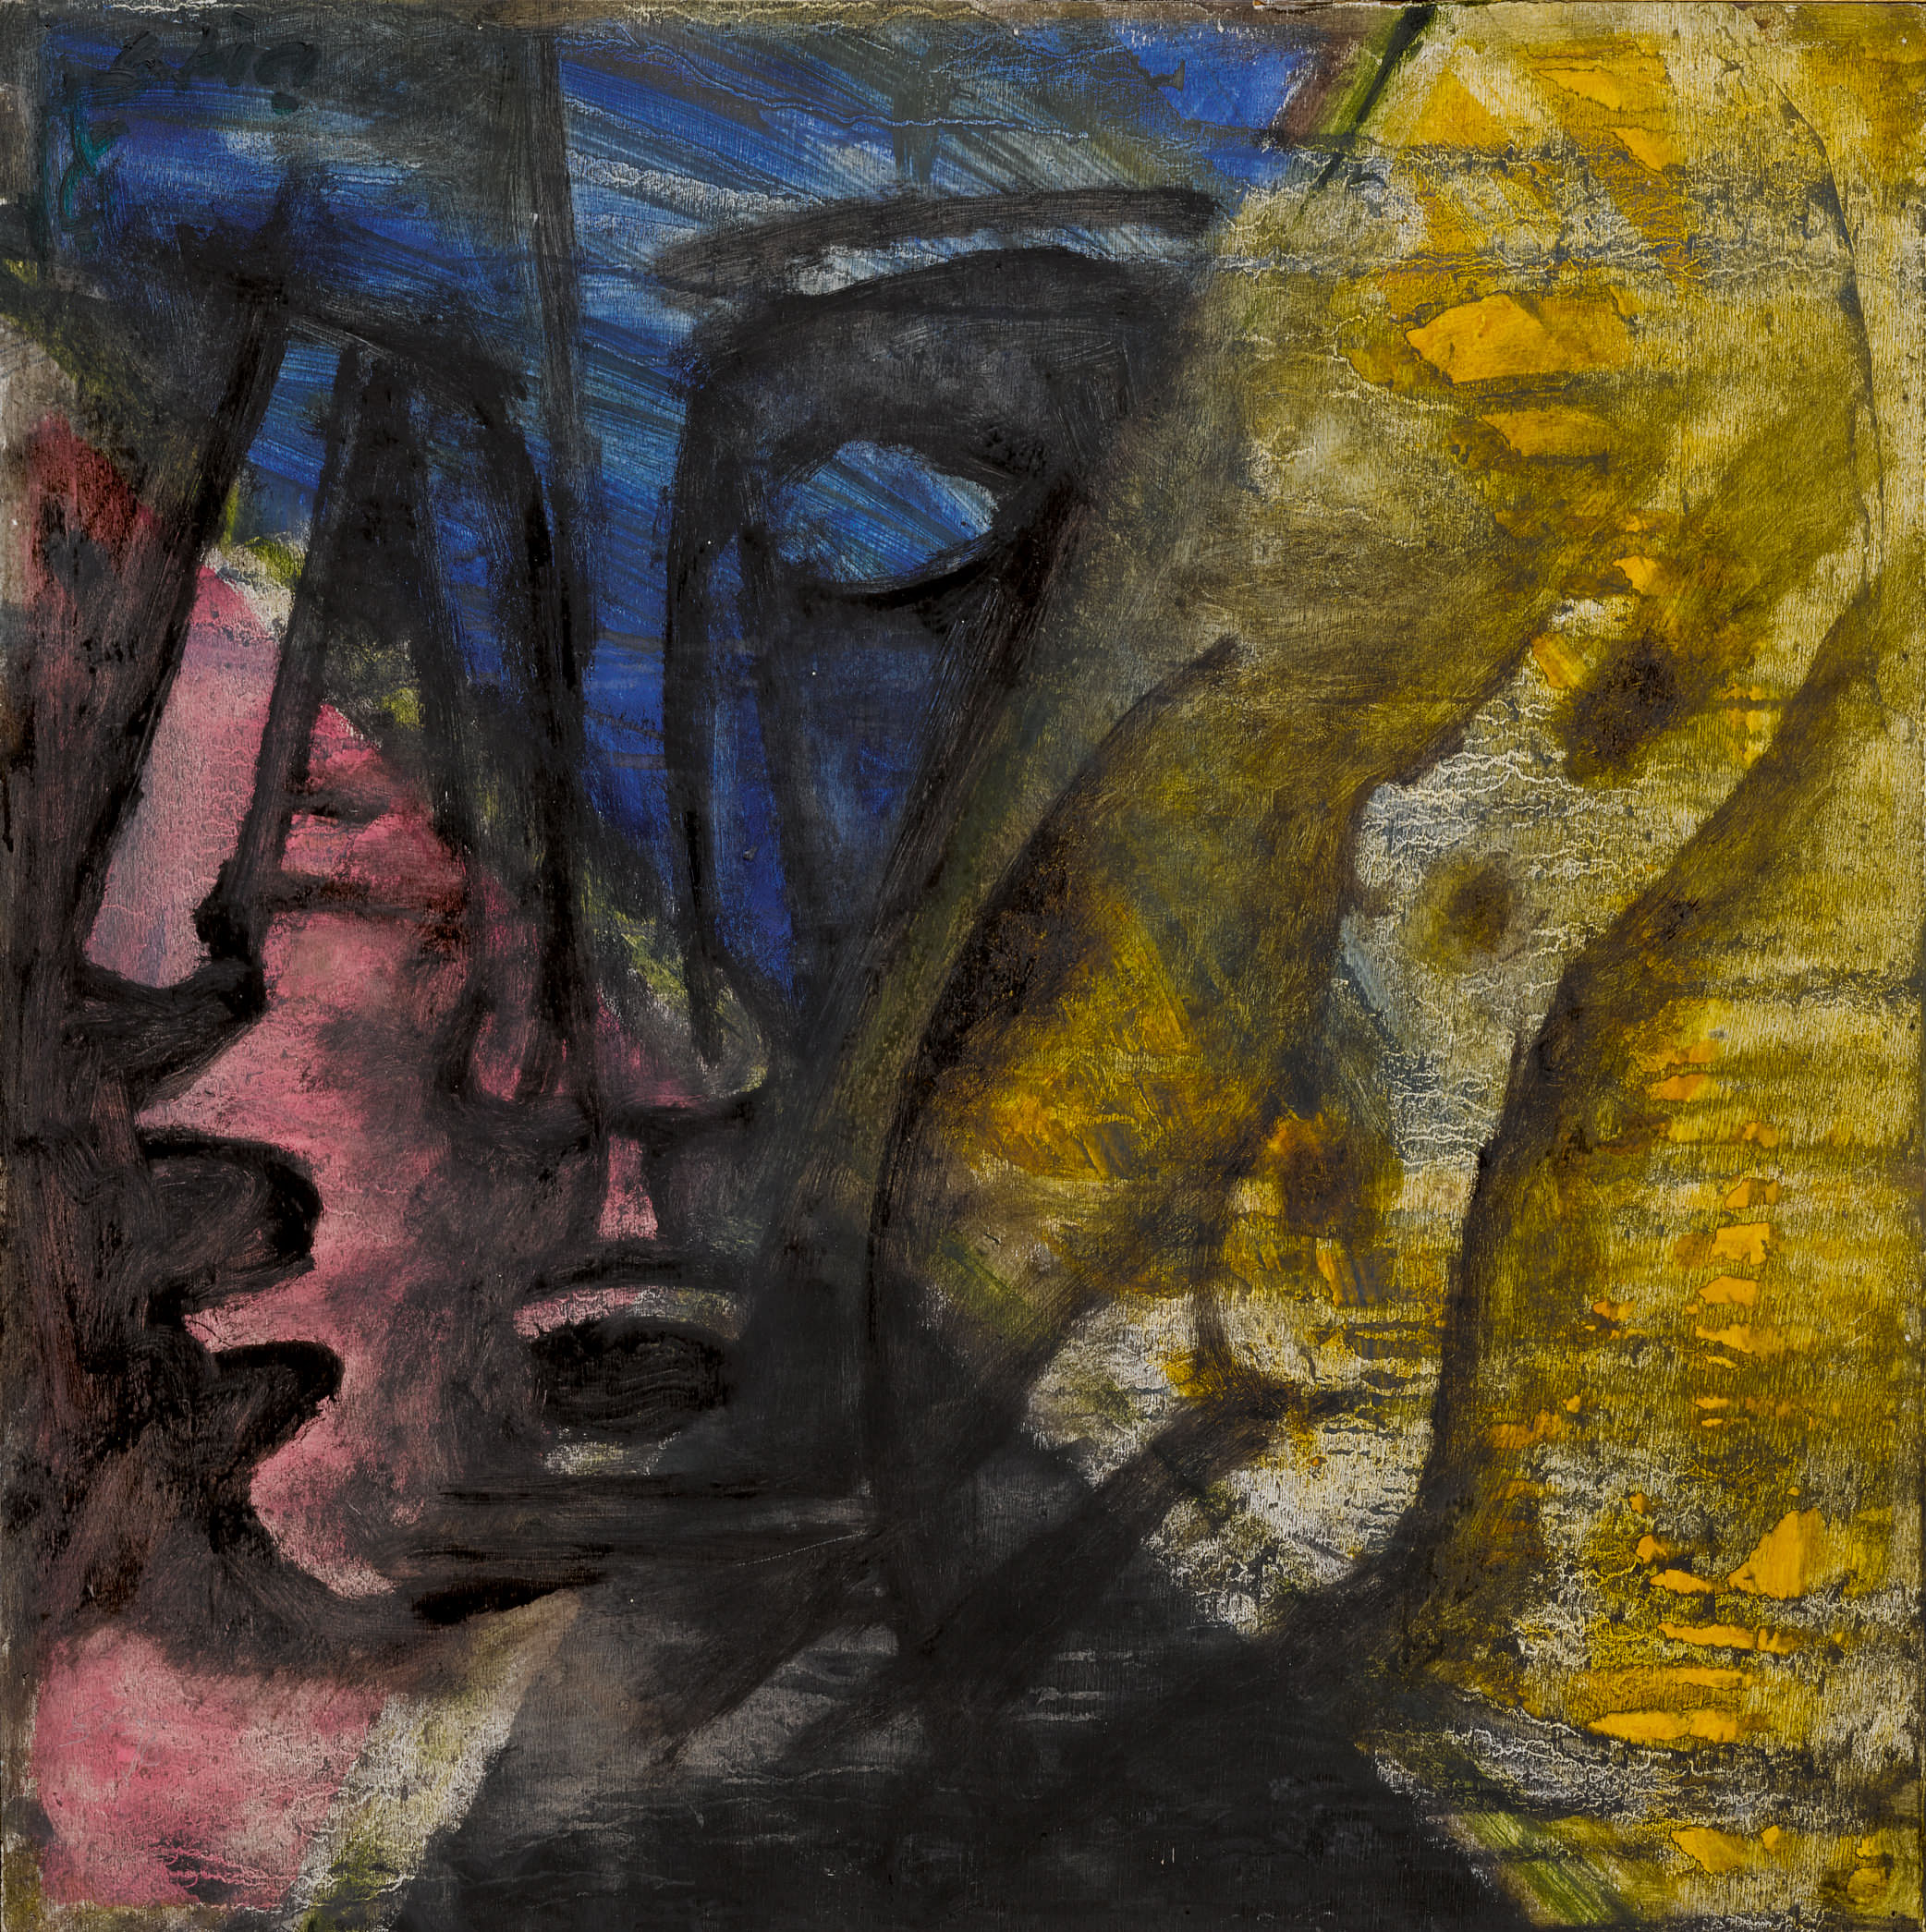 N10333, Lot 4, Maqbool Fida Husain